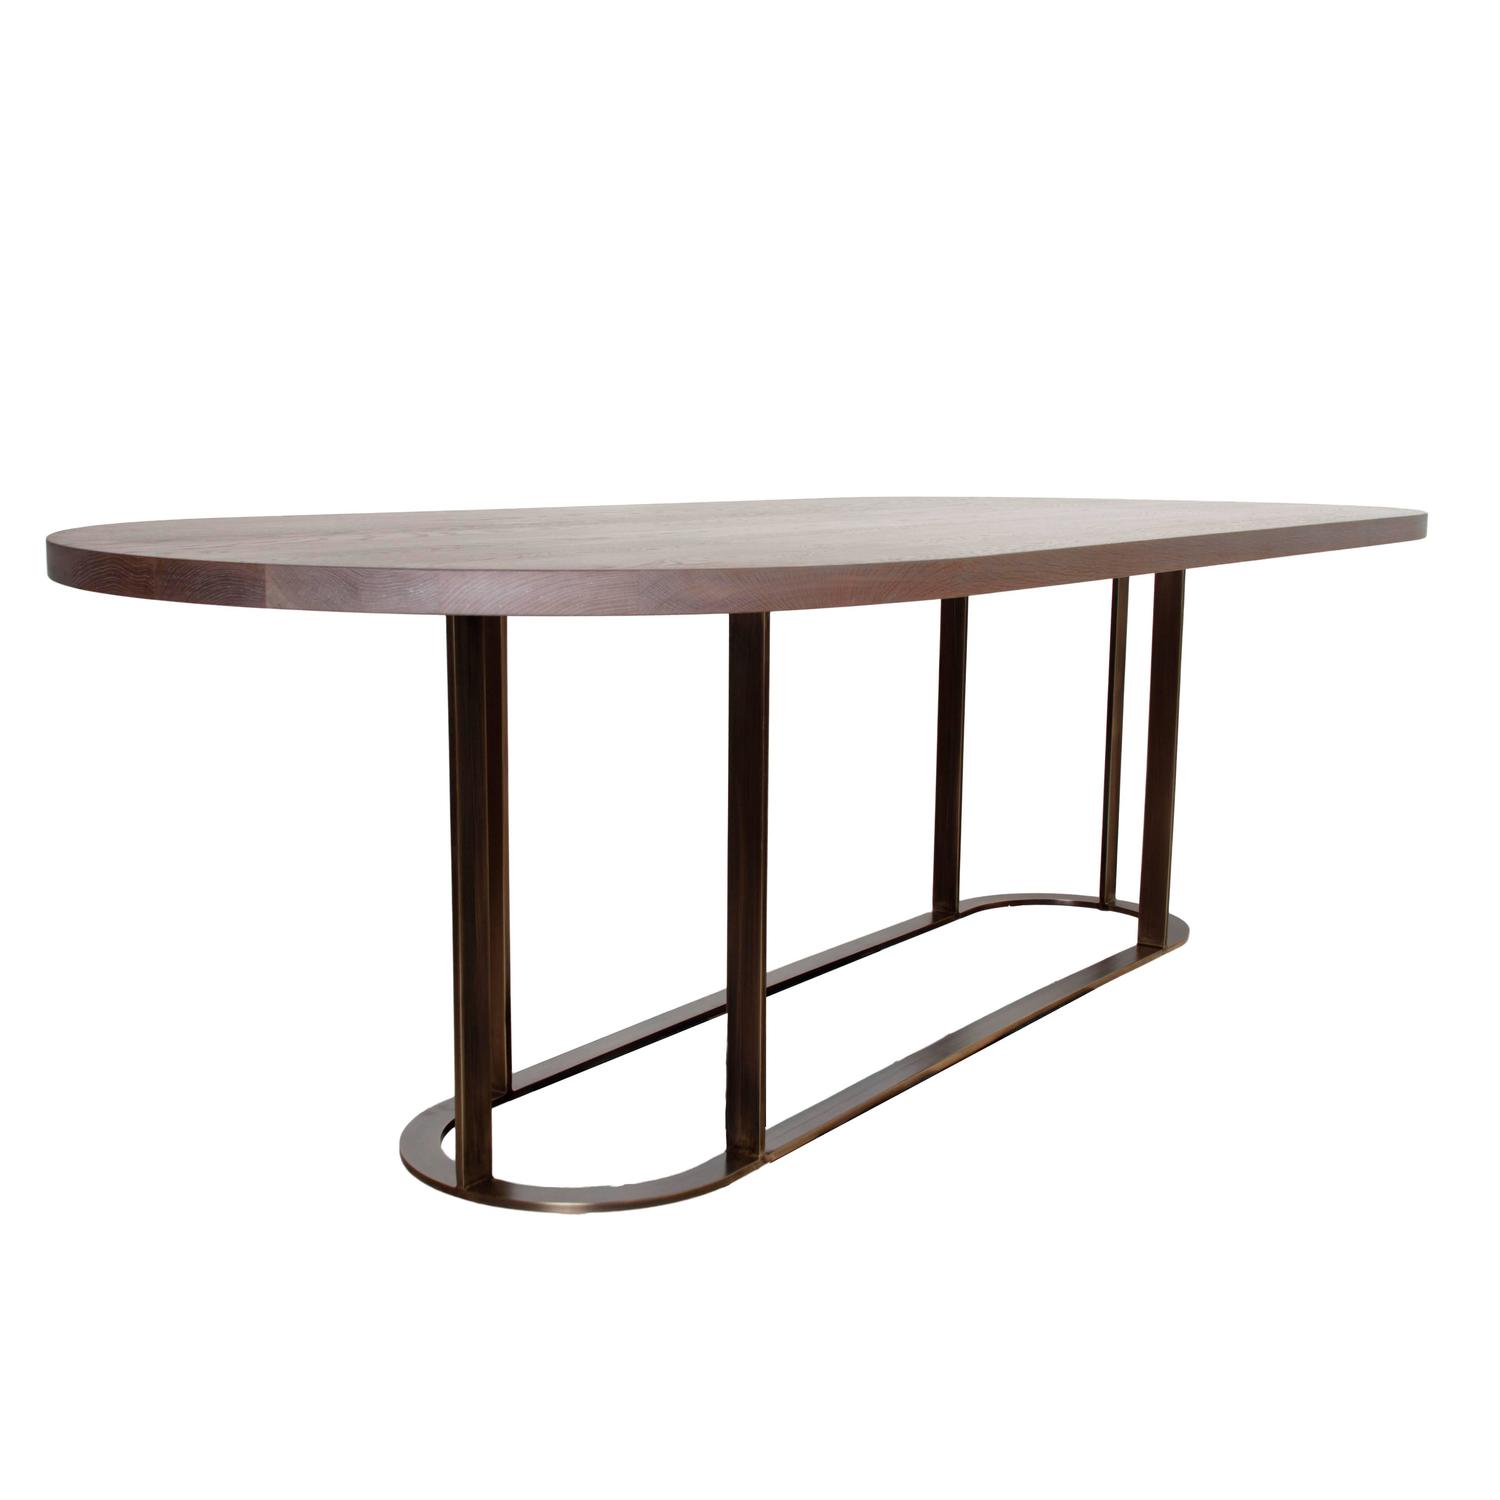 Coyler Dining Table with Solid Bronze Base by Thomas Hayes  : 8z from www.1stdibs.com size 1500 x 1500 jpeg 45kB